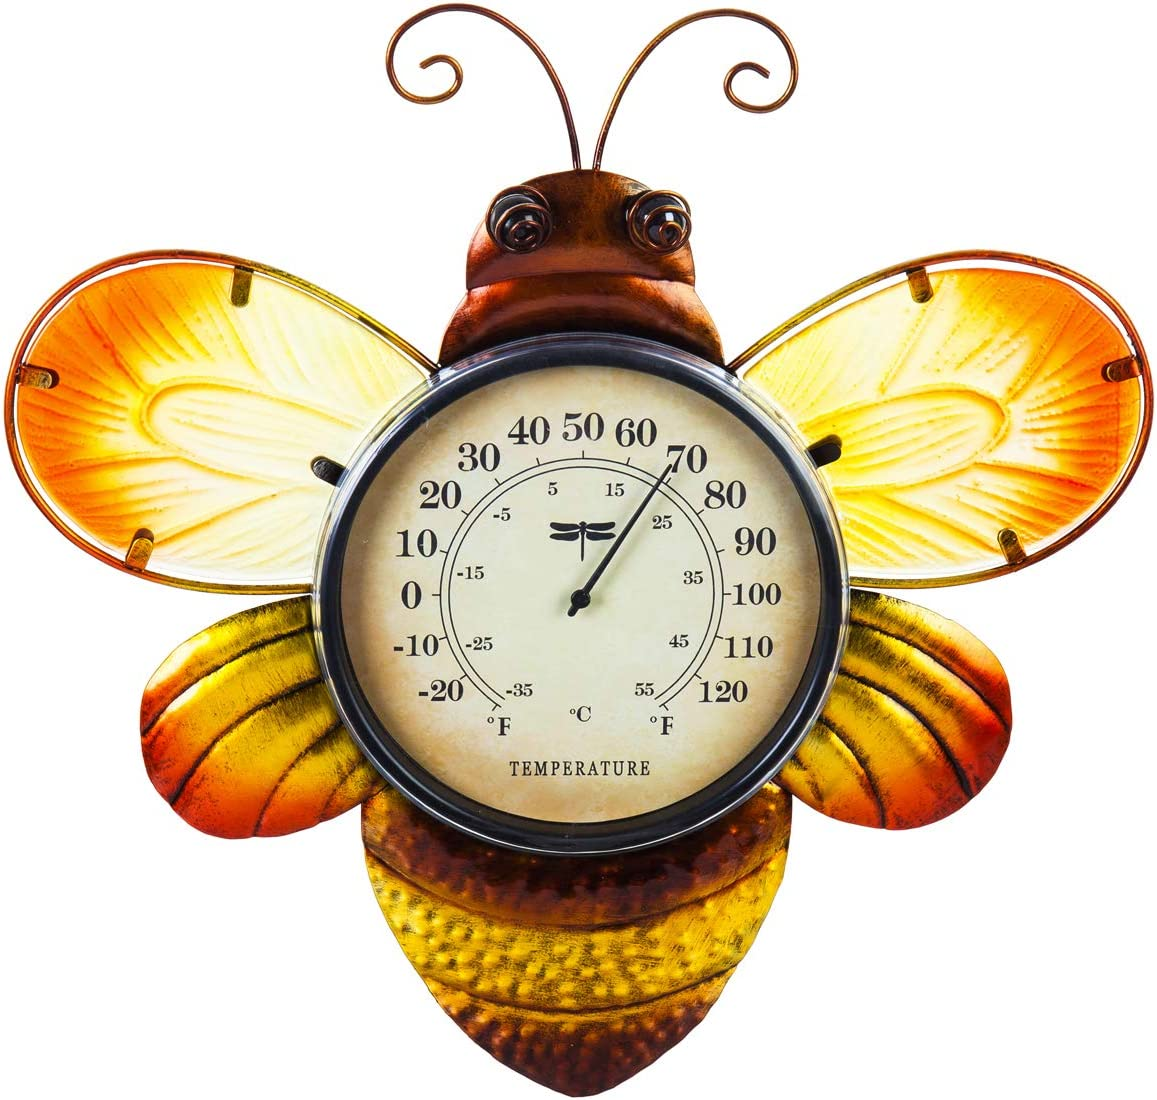 Evergreen Garden Beautiful Summer Bumble Bee Outdoor Wall Thermometer - 14 x 1 x 15 Inches Fade and Weather Resistant Outdoor Decoration for Homes, Yards and Gardens